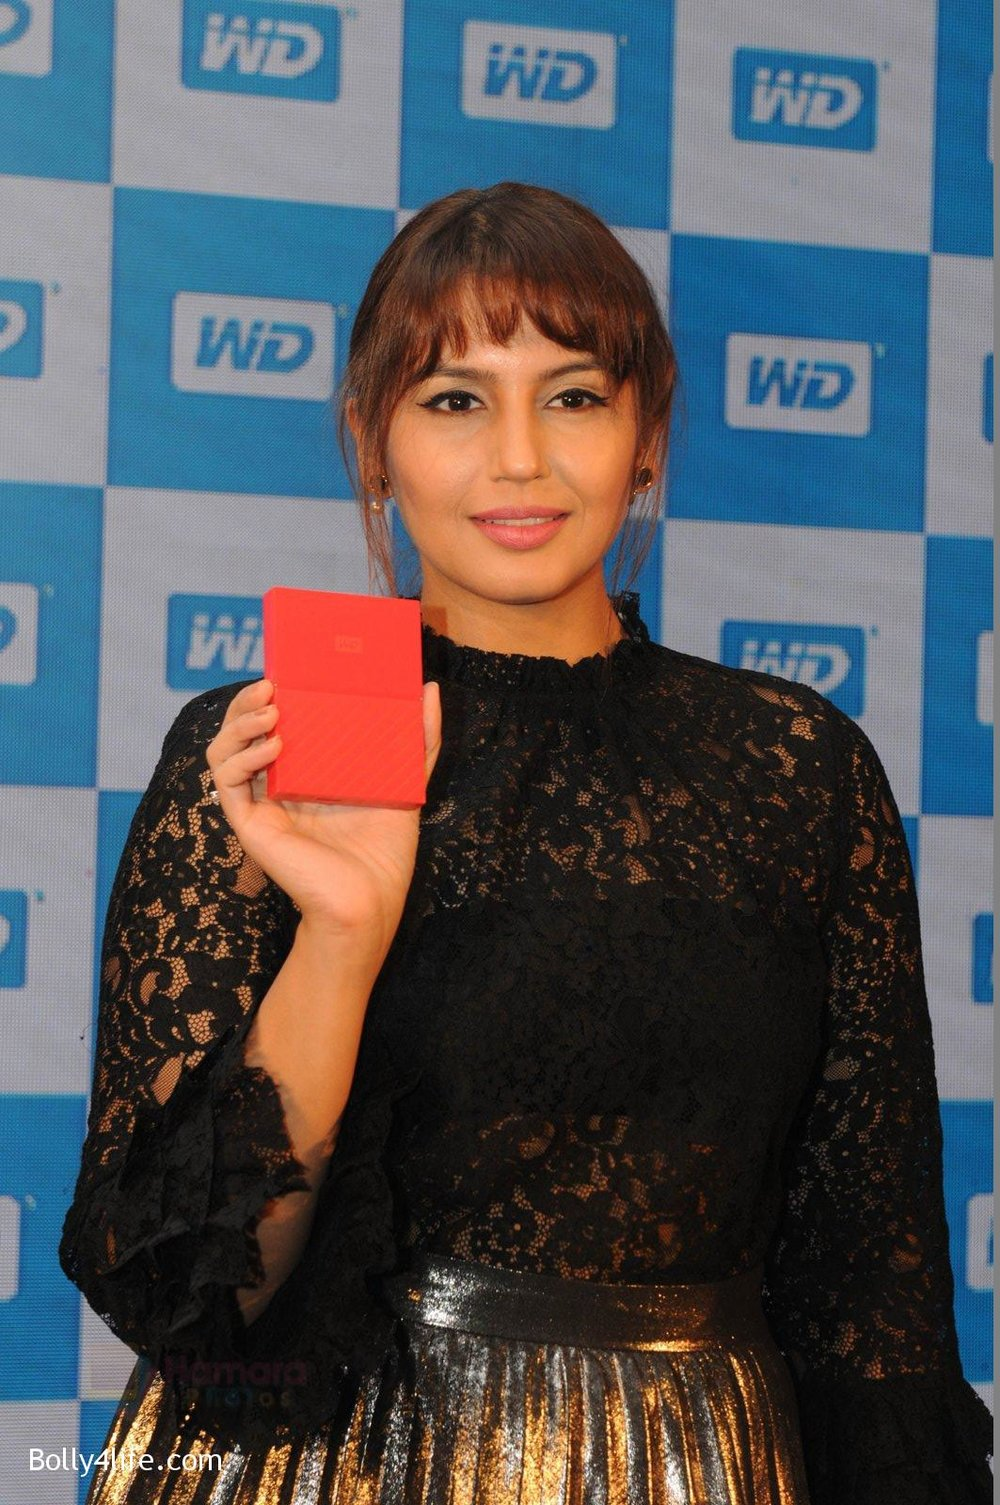 Huma-Qureshi-at-WD-launch-in-Delhi-on-19th-Oct-2016-13.jpg